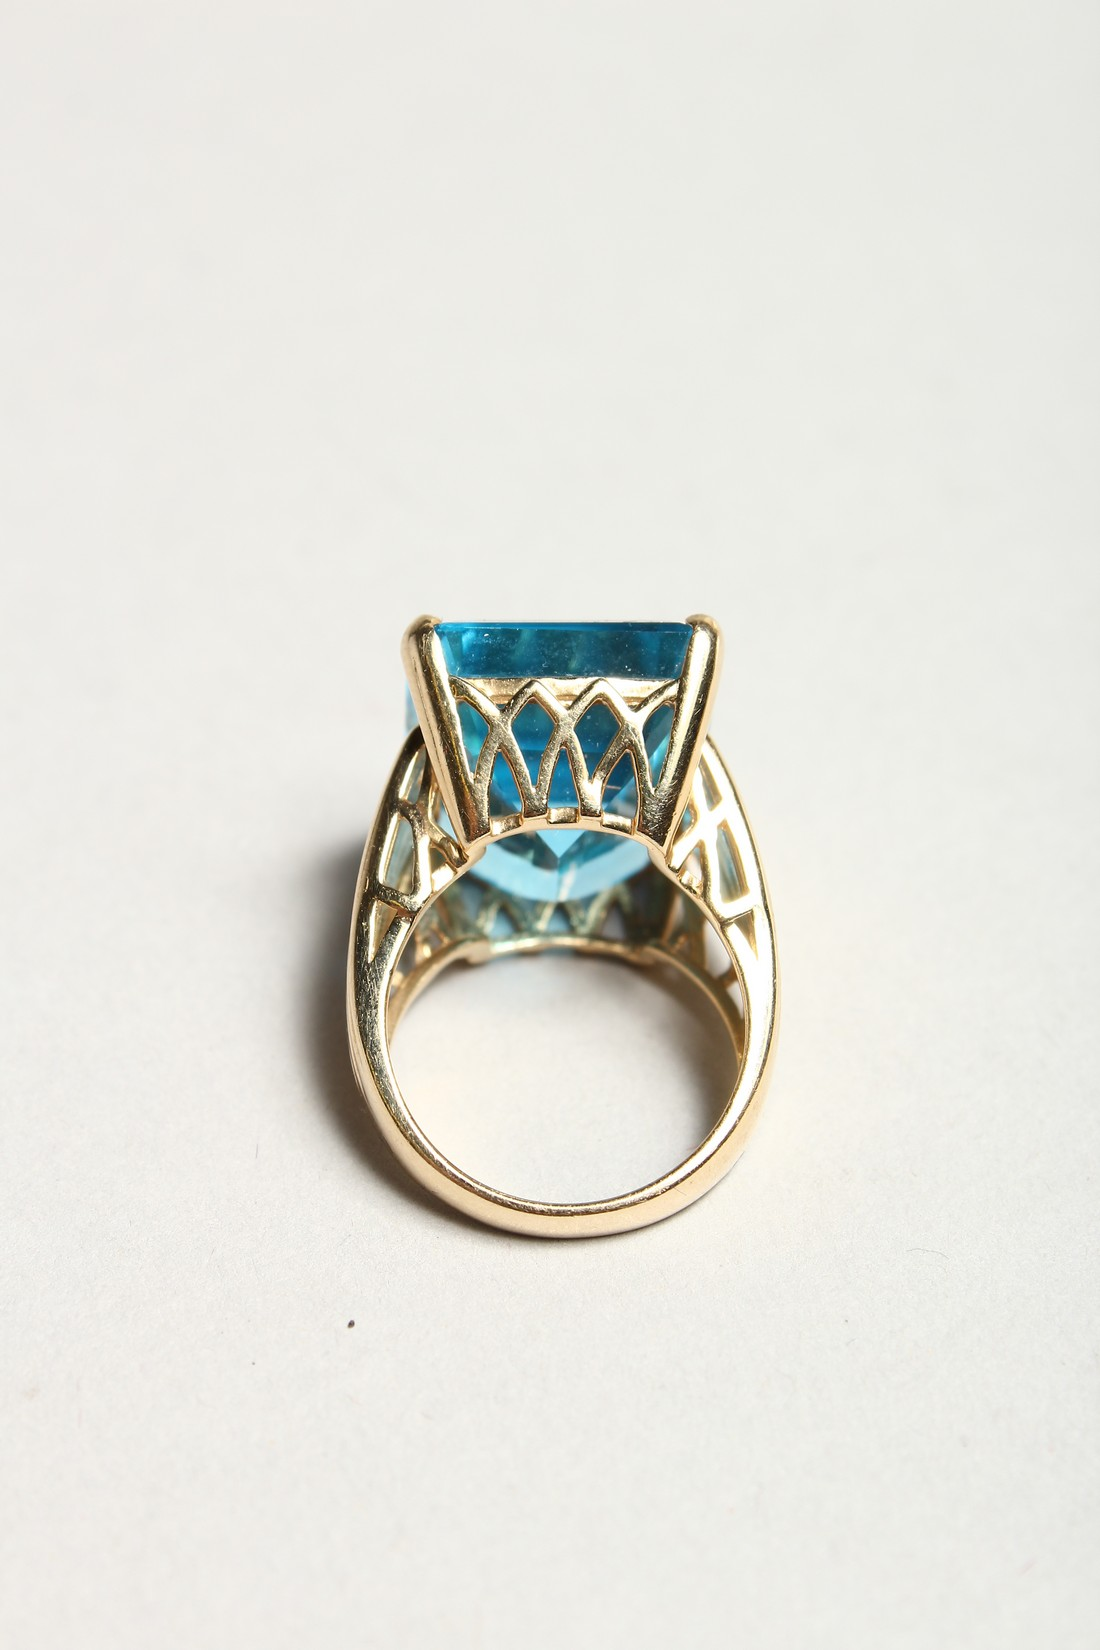 A GOOD 18CT GOLD LARGE TOPAZ SET RING. - Image 4 of 6